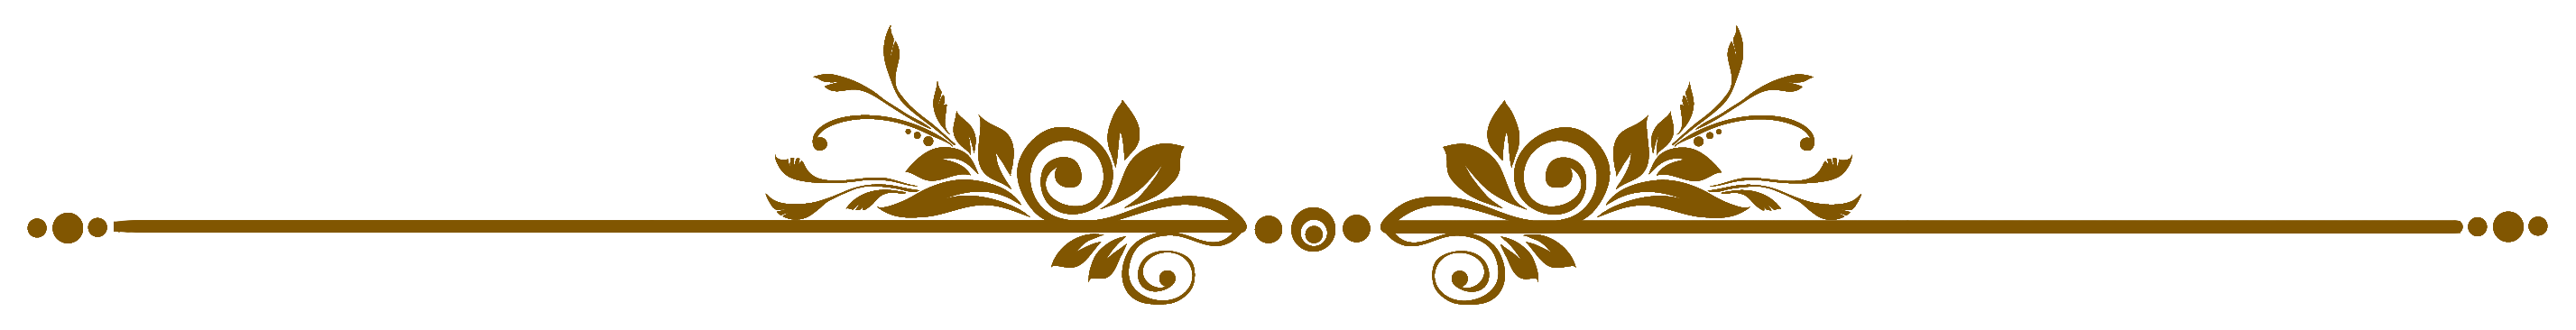 Golden line png. Borders image related wallpapers